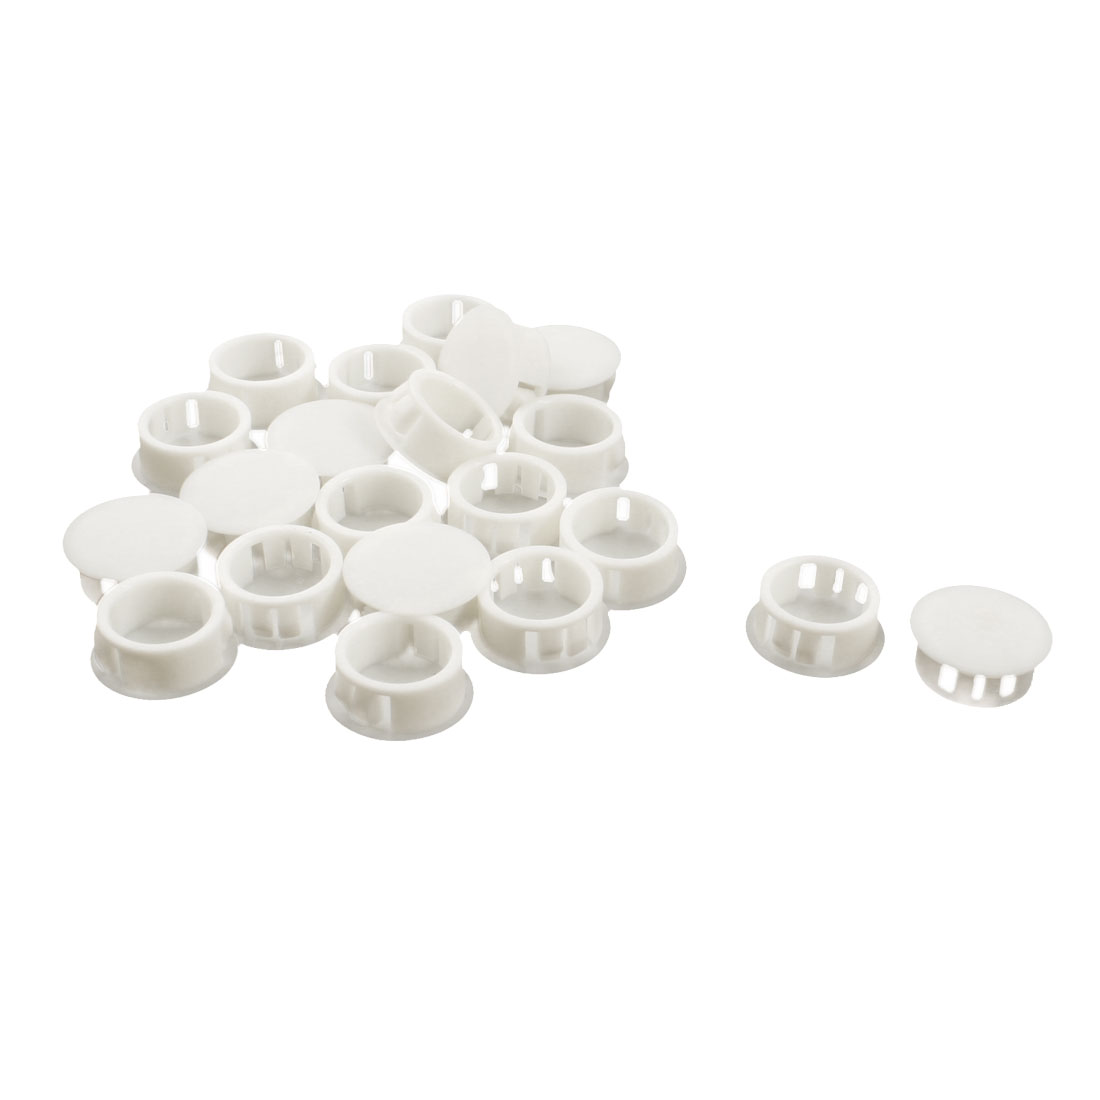 20PCS SKT-20 20.1mm Insulated White Plastic Snap in Mount Domed Blank Lock Hole Cover Harness Fastener